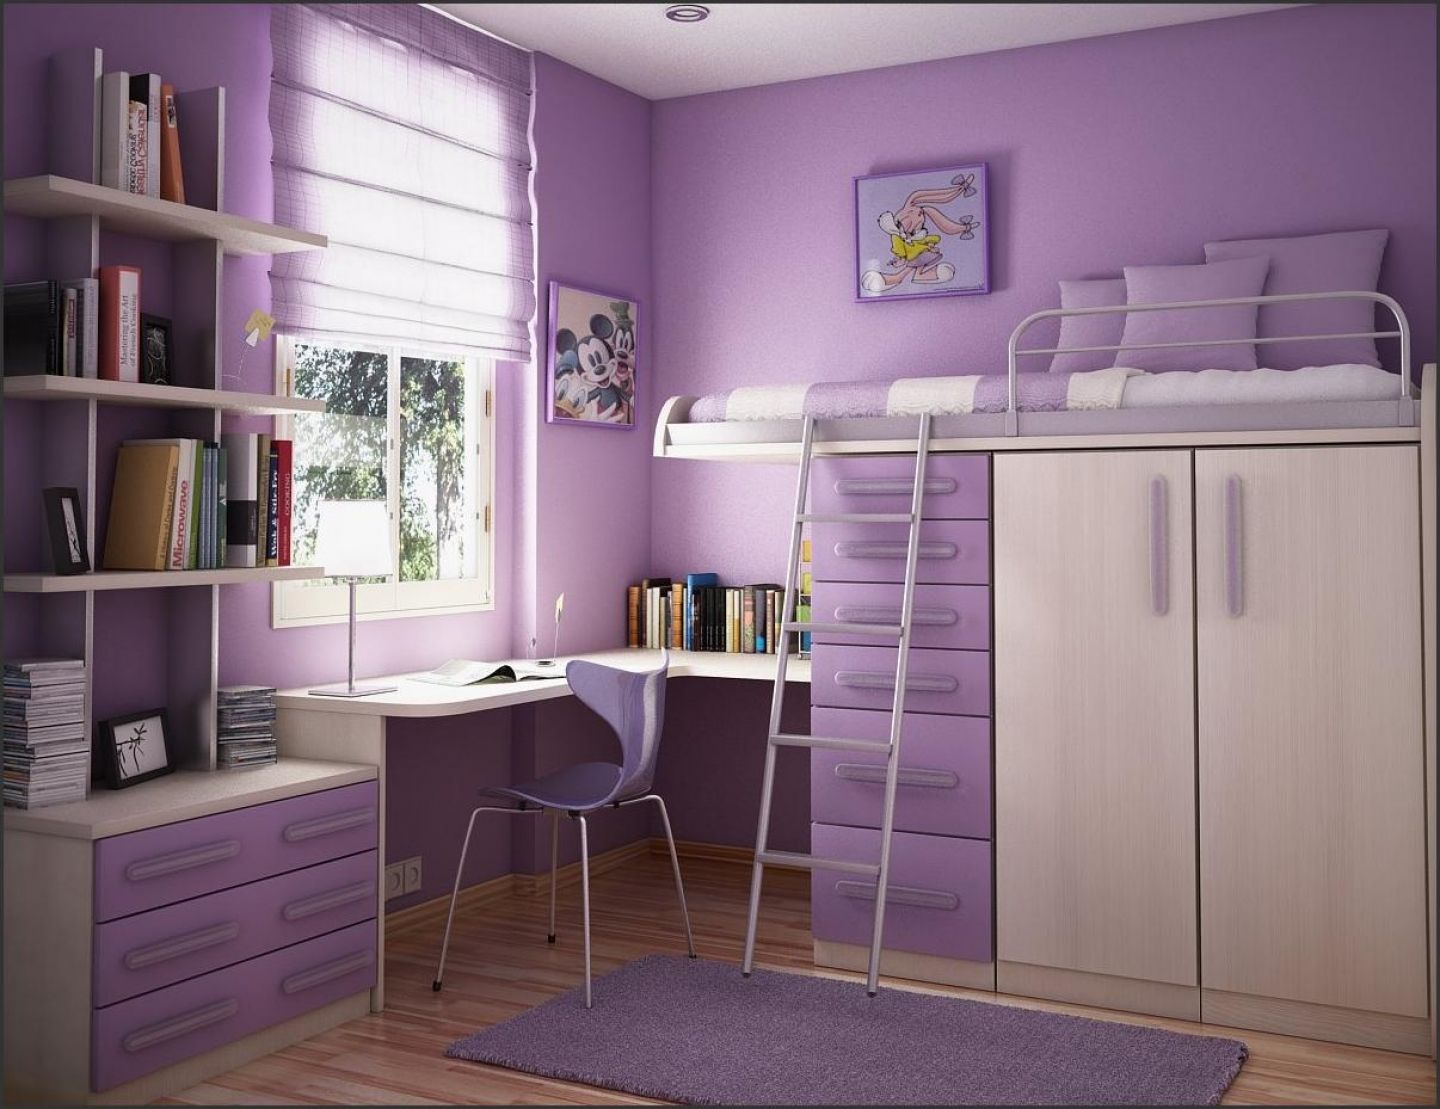 teen girl bedroom decorating ideas 06 13 1403 - Teen Girls Bedroom Decorating Ideas